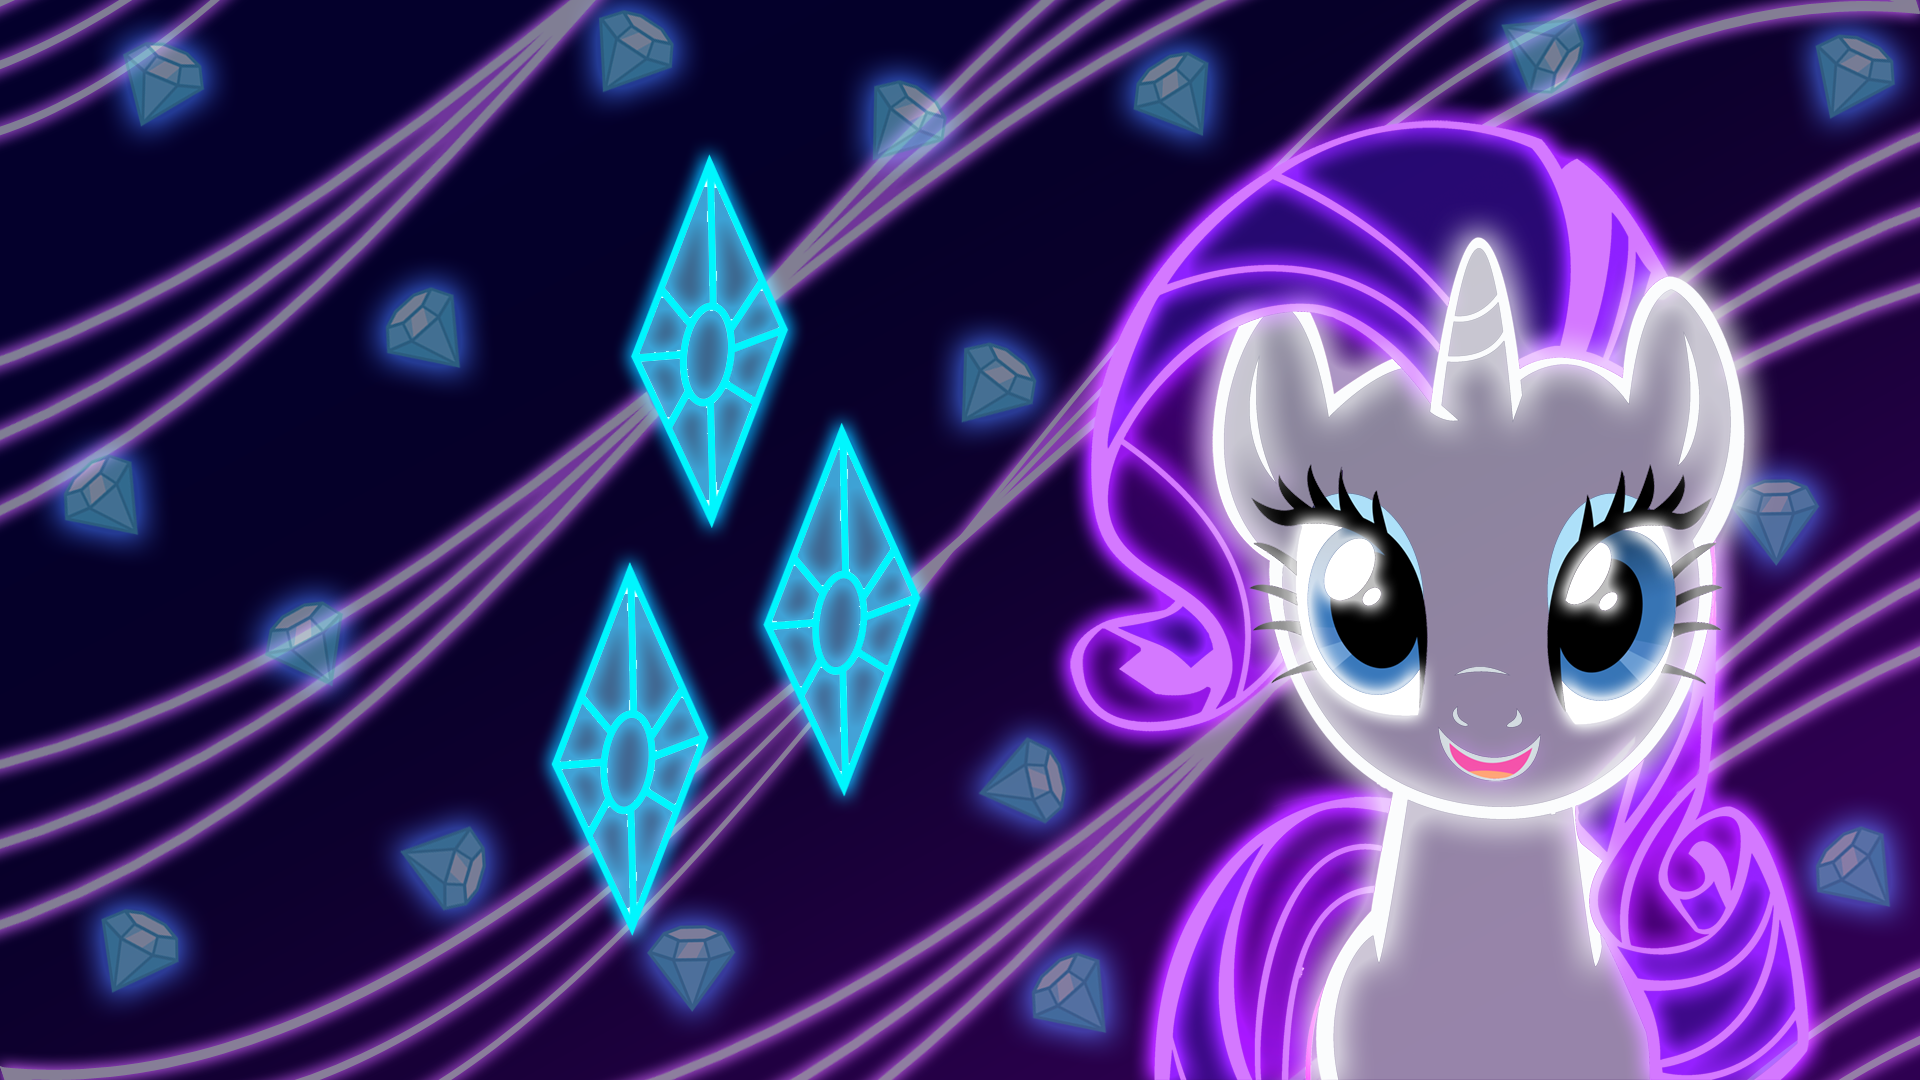 Rarity Pinkie Pie Applejack Twilight Sparkle Rainbow Dash Fluttershy Princess Luna Violet Purple Light Anime Computer